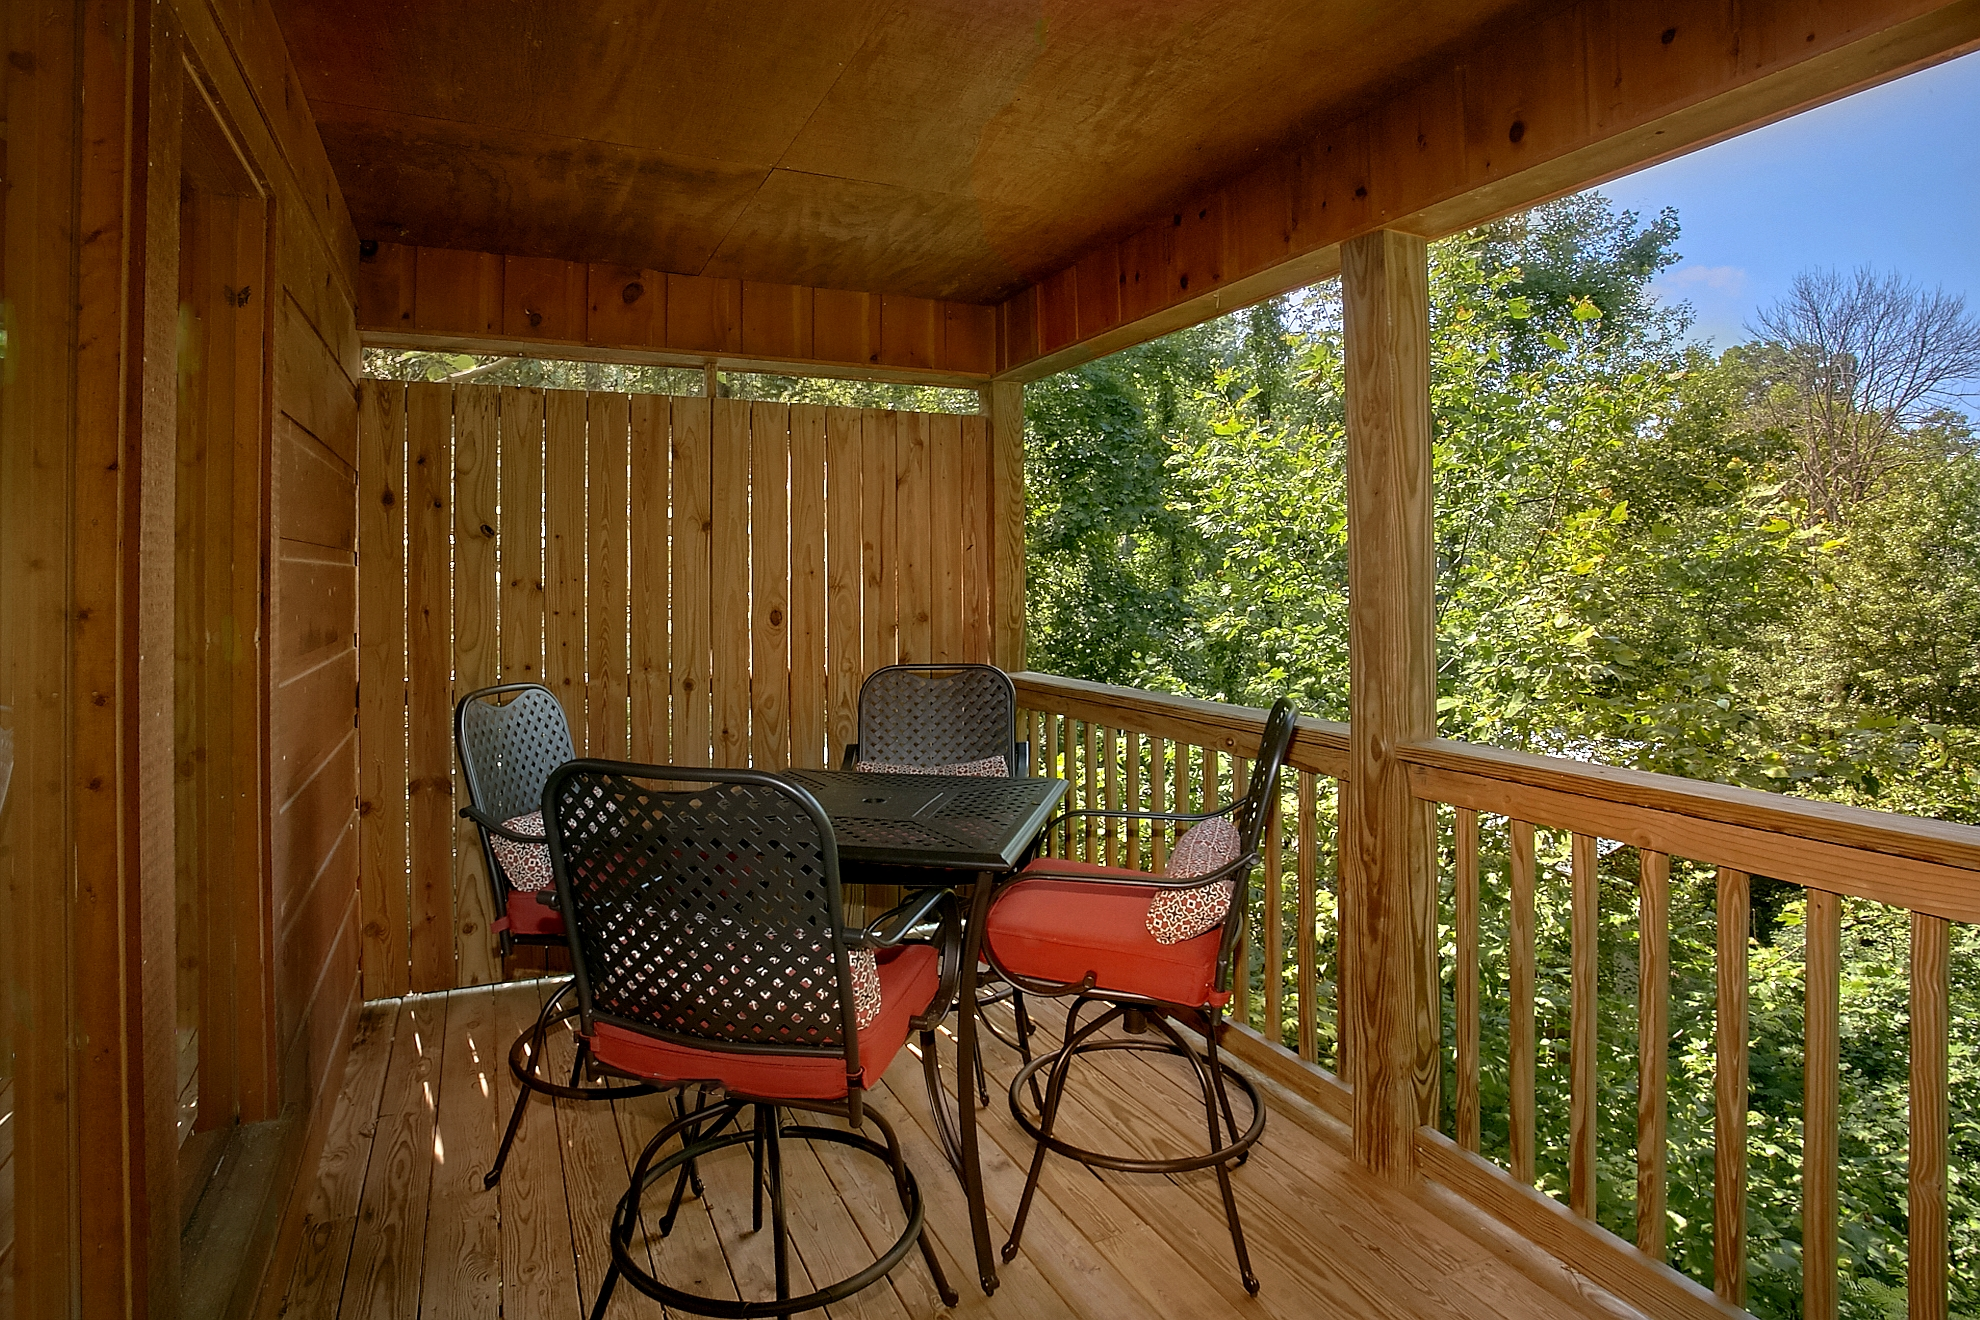 allow hot lodging branson tub rock in mo pets cabins romantic table on lake